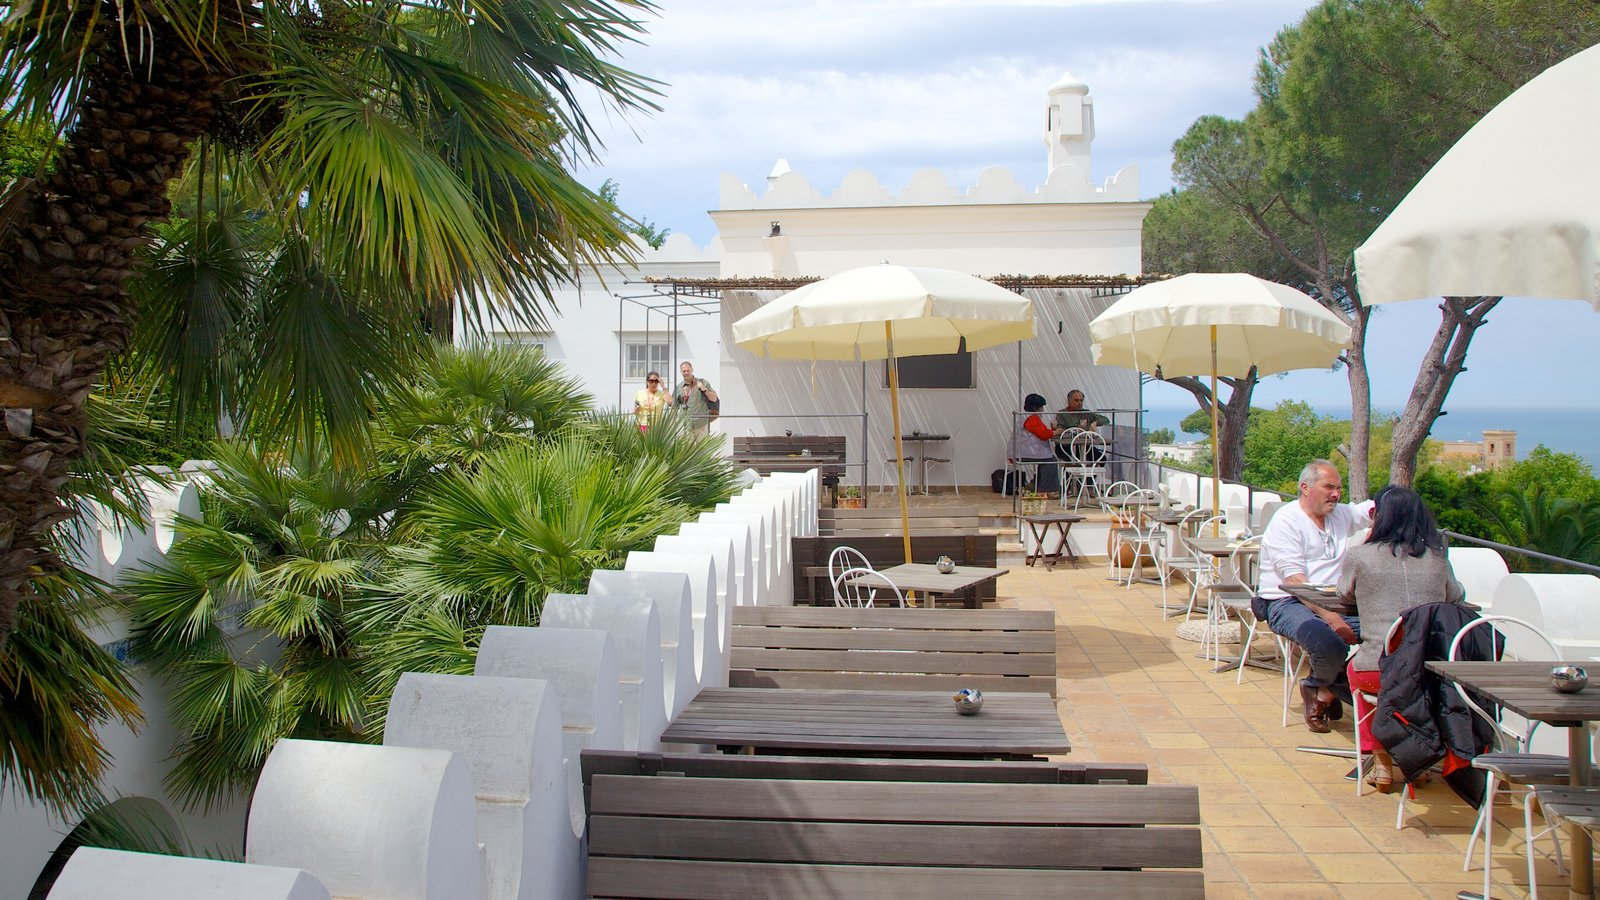 Villa San Michele featuring dining out, a coastal town and outdoor eating